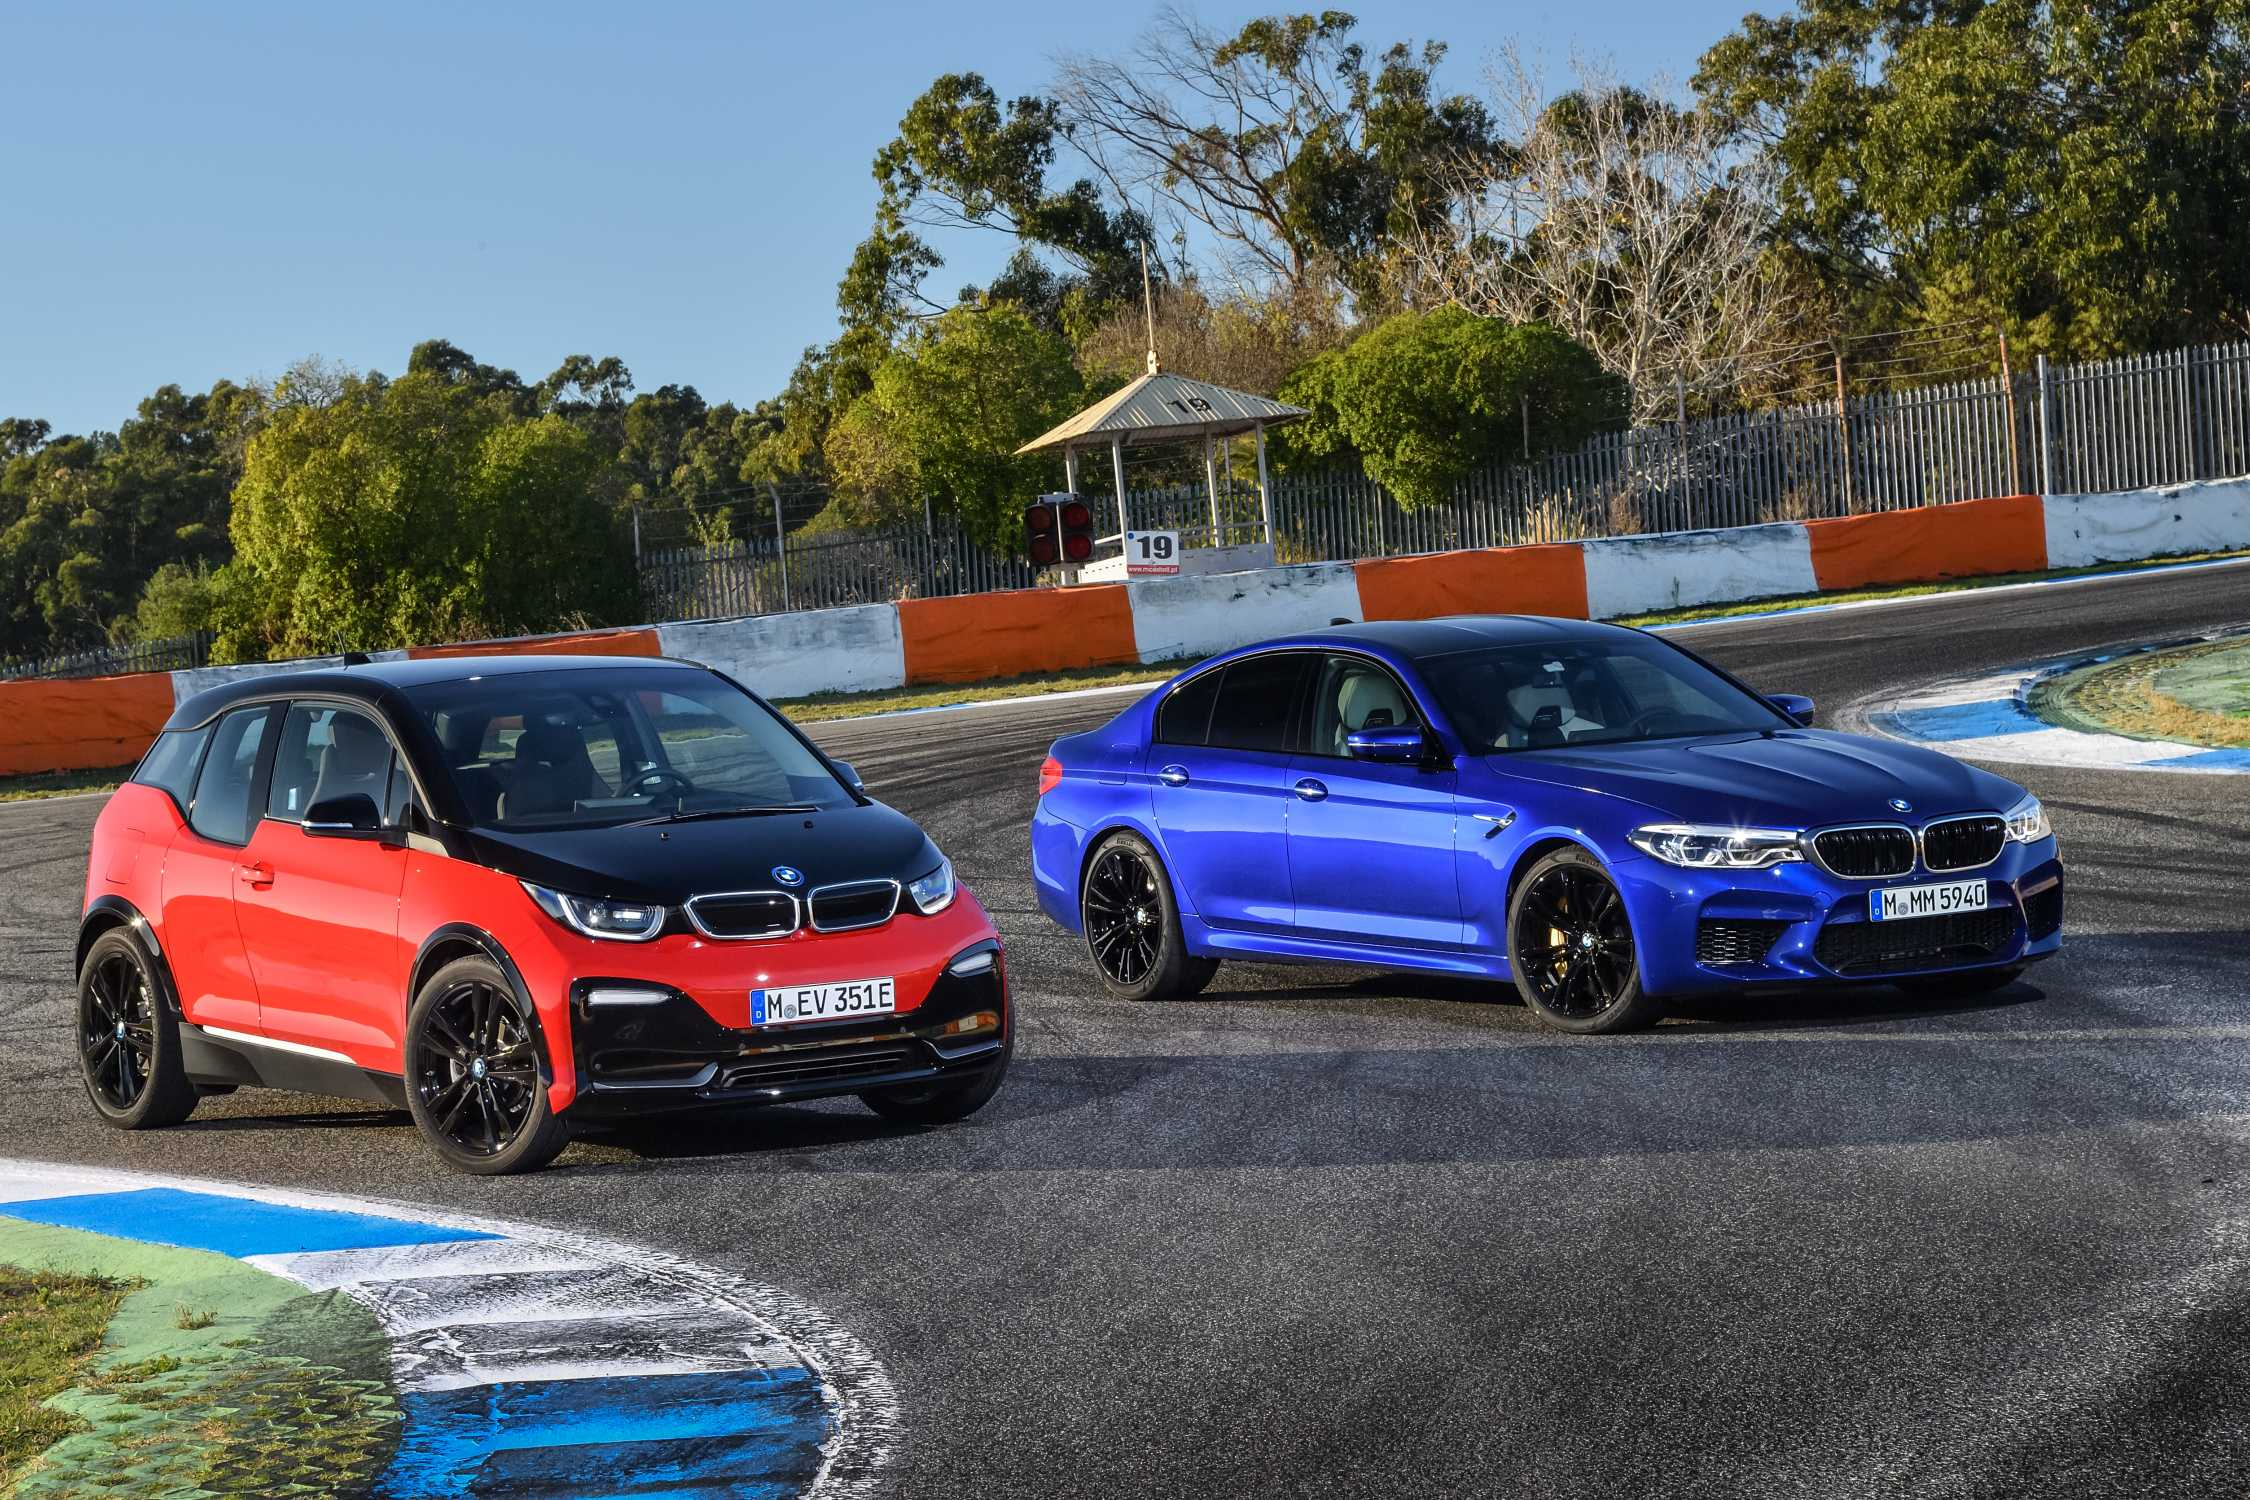 Bmw Announces Price For The All New Bmw M5 The Quintessential High